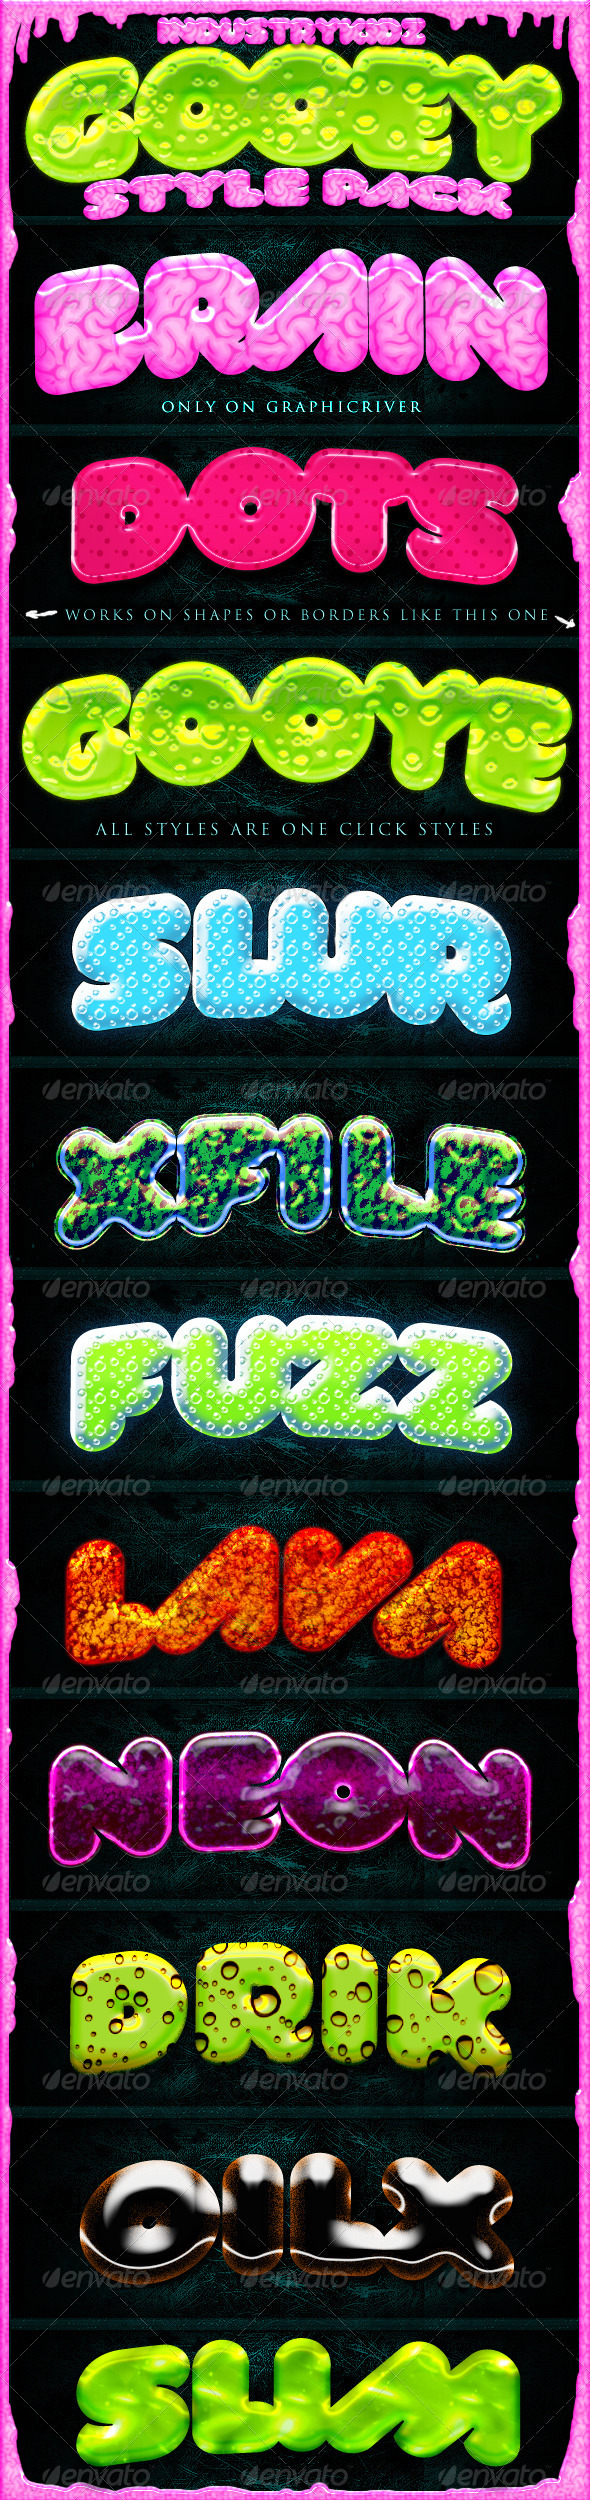 Graphic River Slime Gooey Photoshop Layer Styles  Add-ons -  Photoshop  Styles  Text Effects 758141